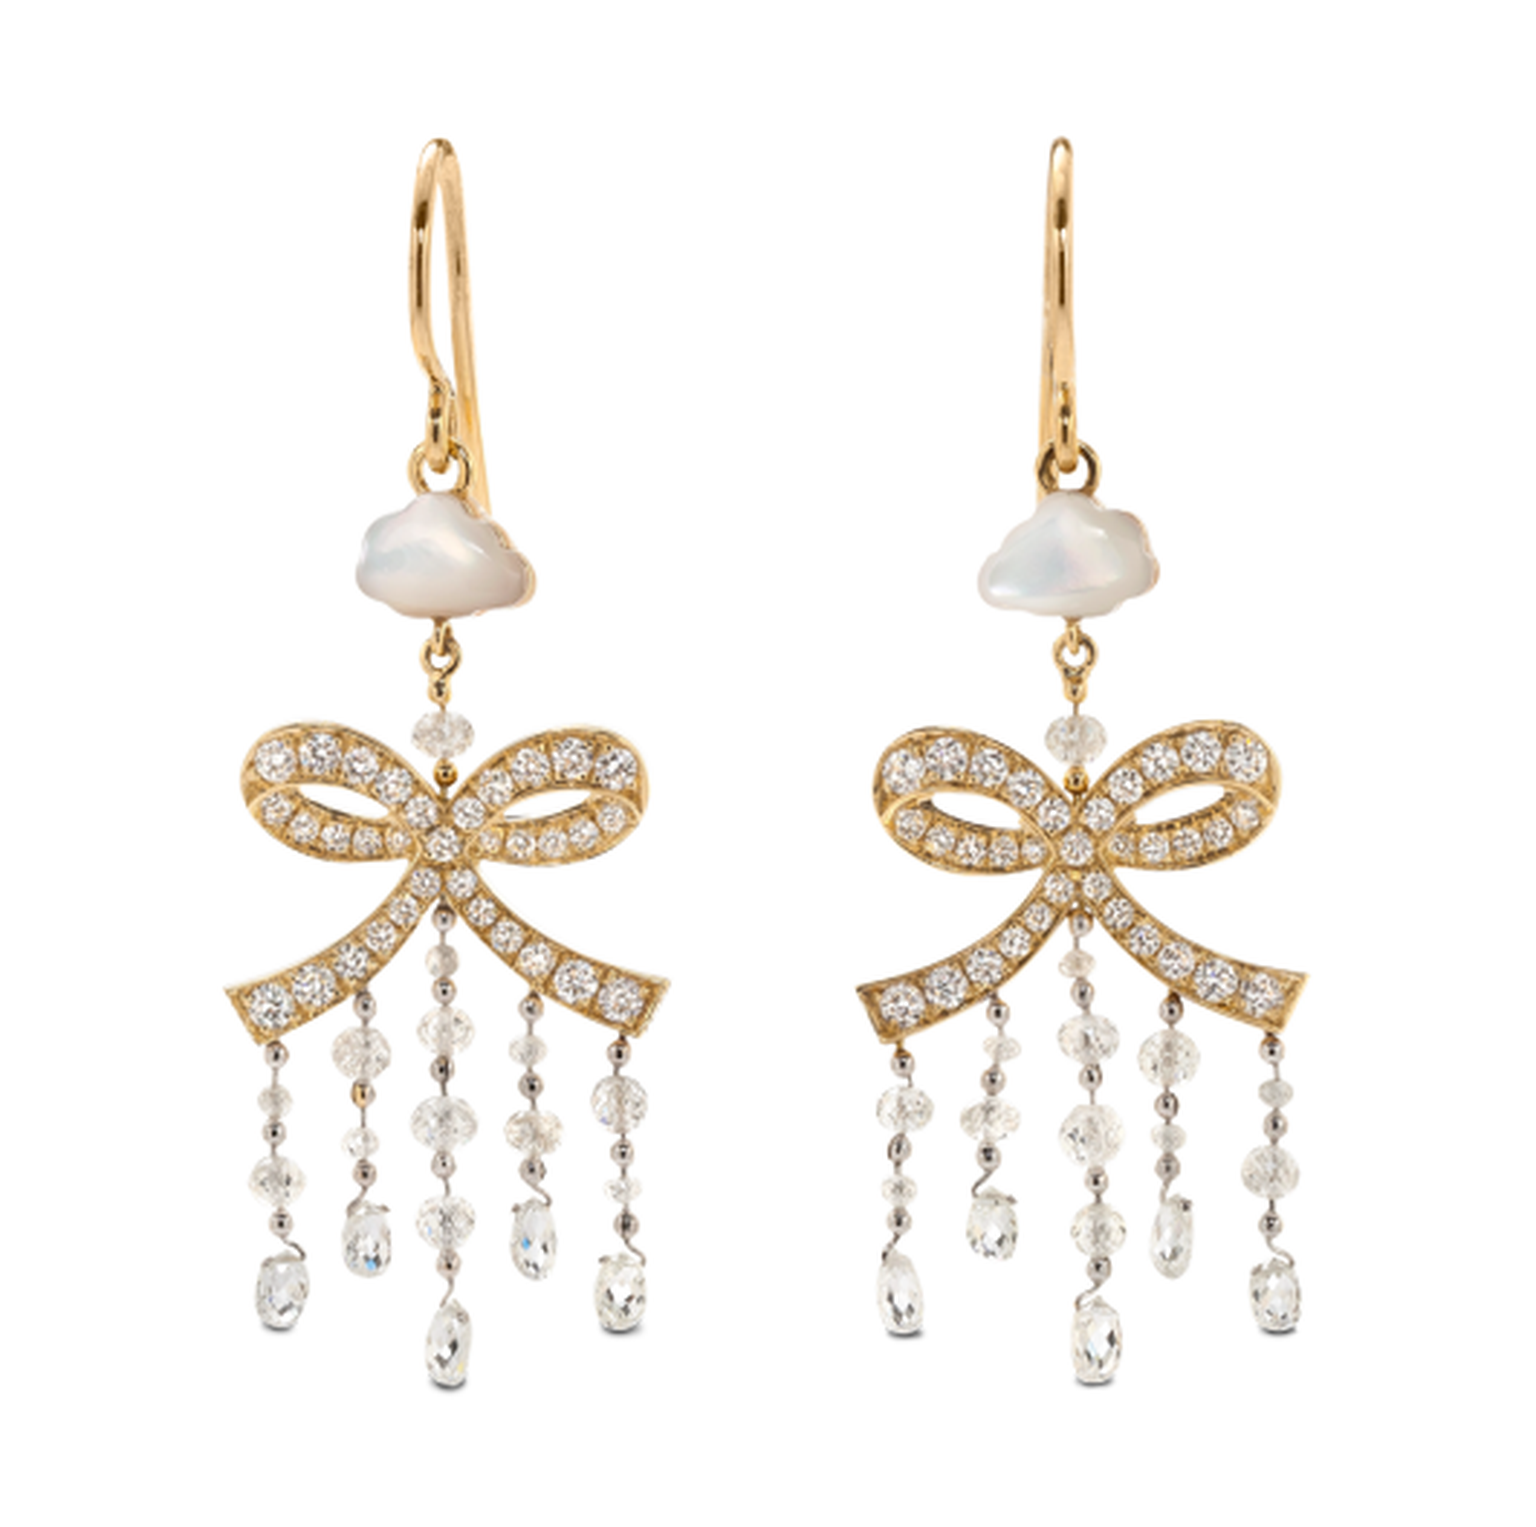 Solange Azagury-Partridge Rain Bow earrings, with pavé diamond bows and mother-of-pearl clouds.